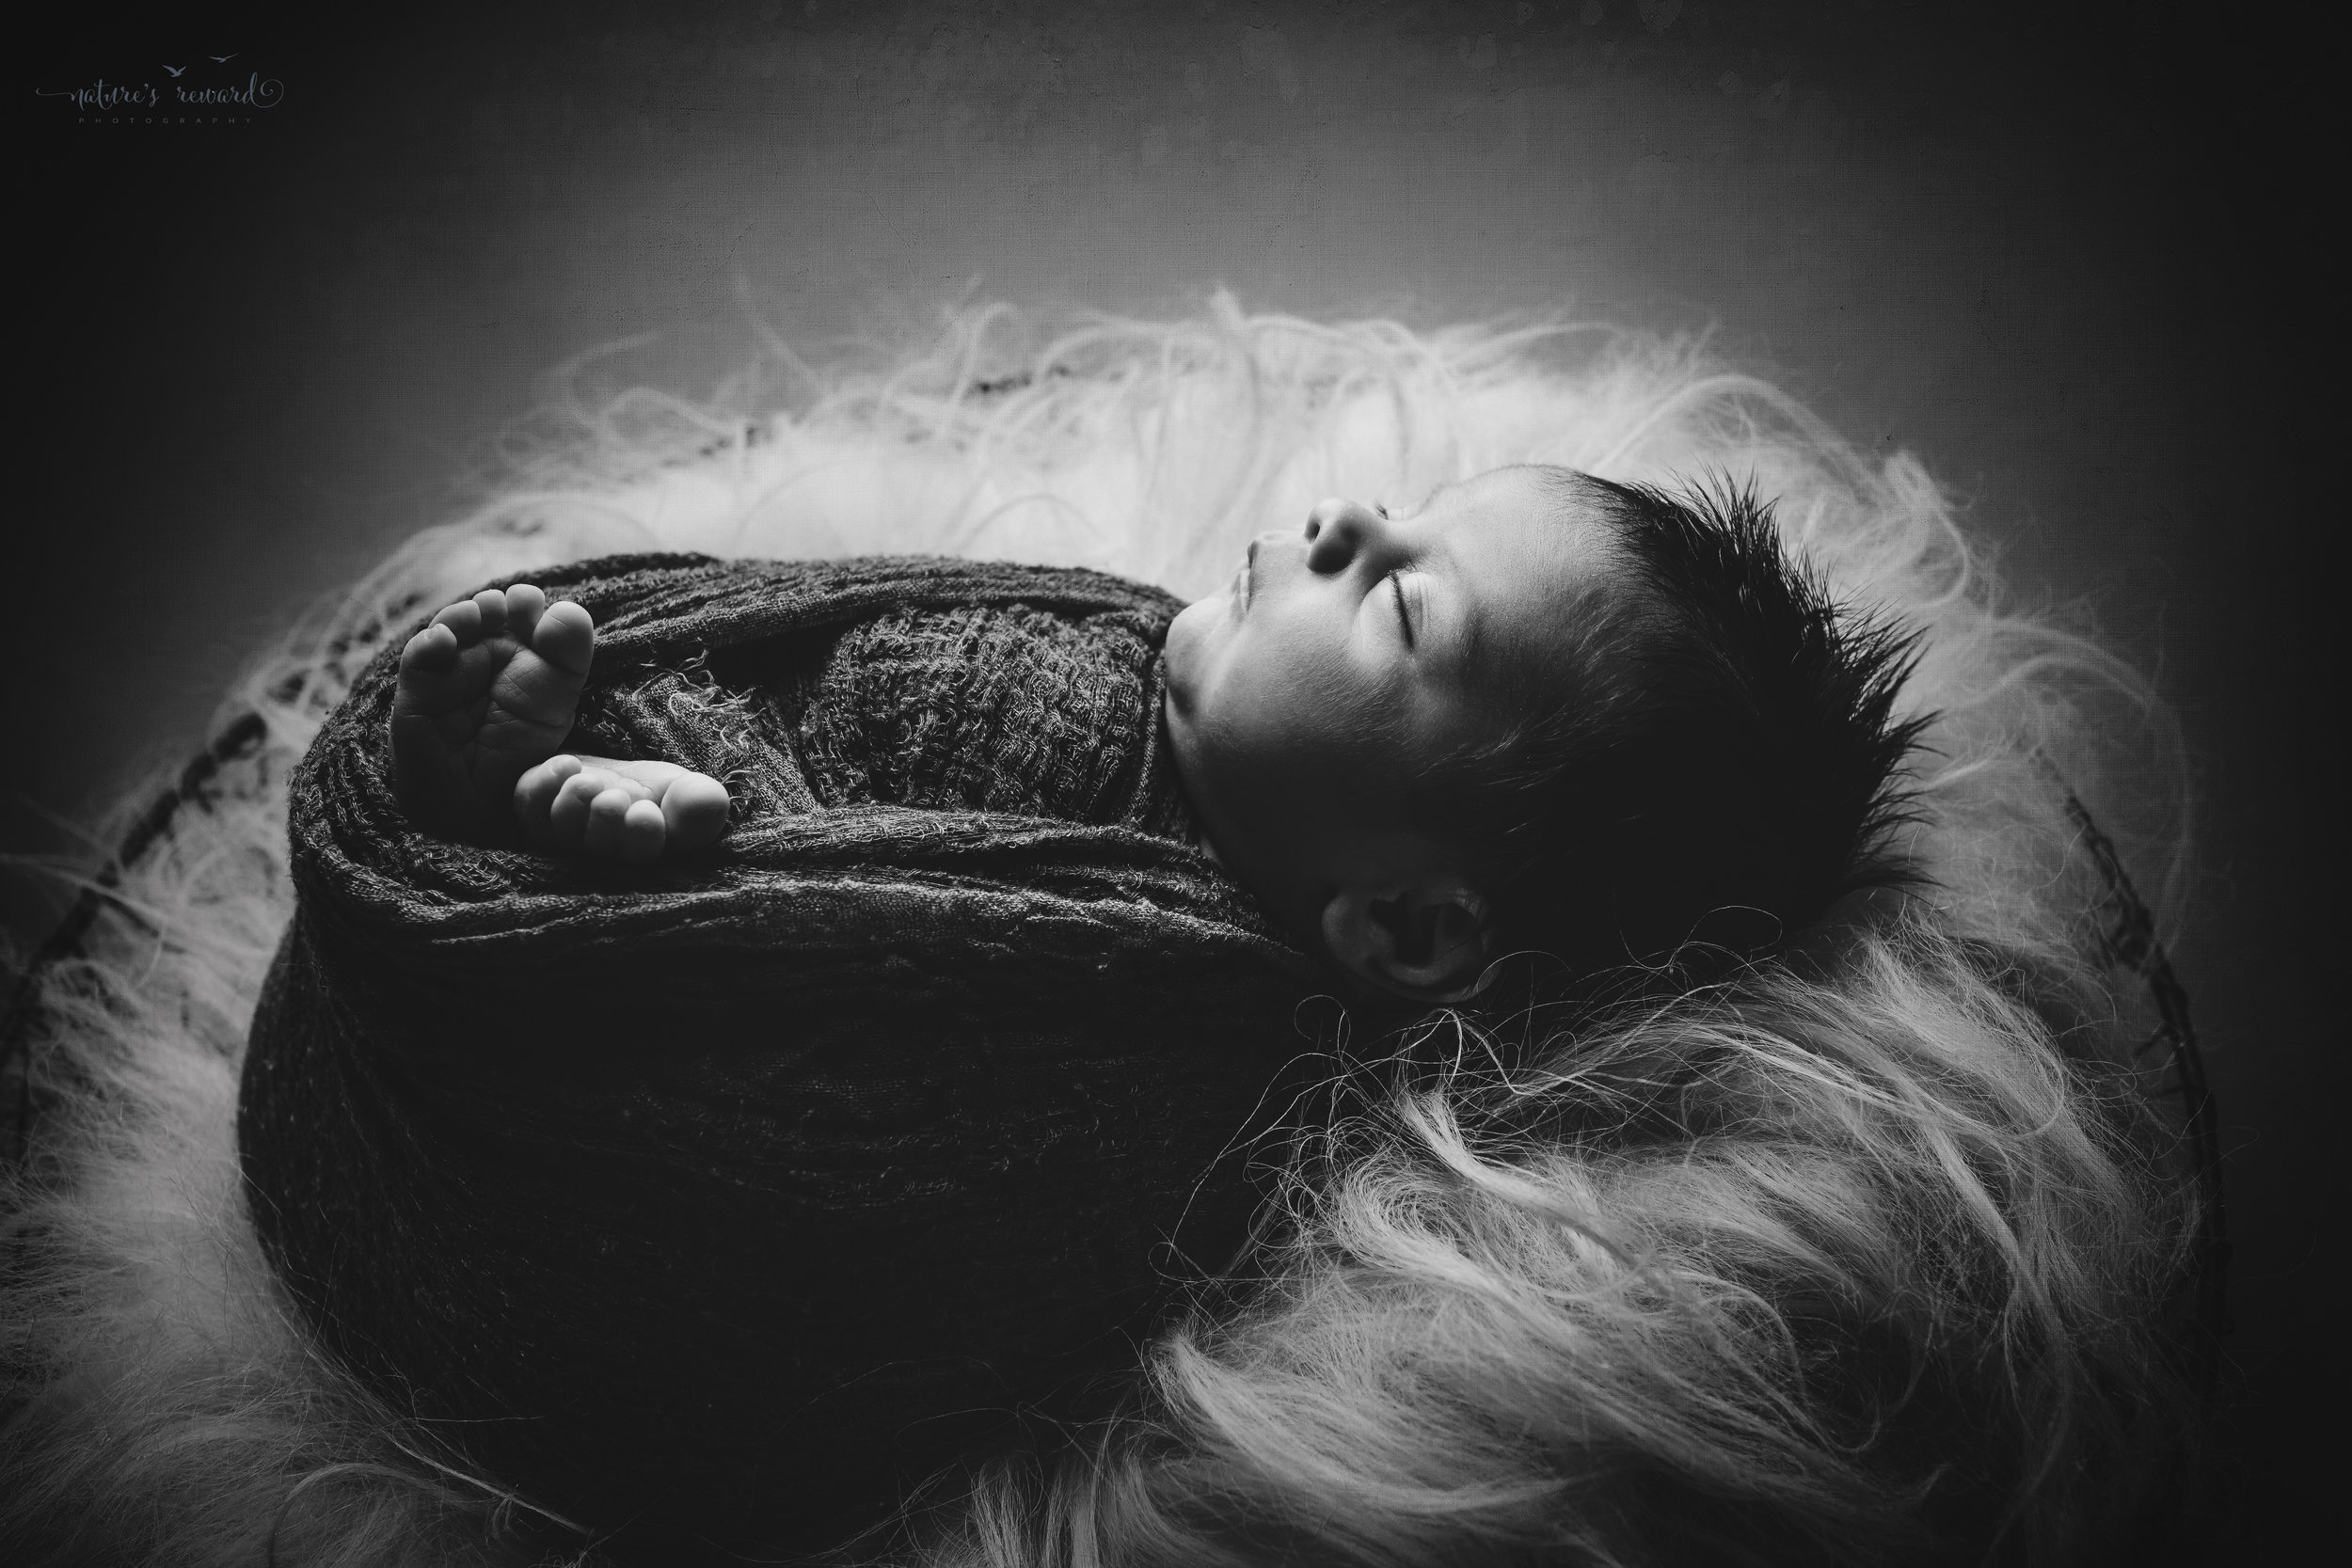 Newborn Baby boy swaddled in grey while laying on a bed of white fur in a metal bowl - a black and white portrait by Nature's Reward Photography